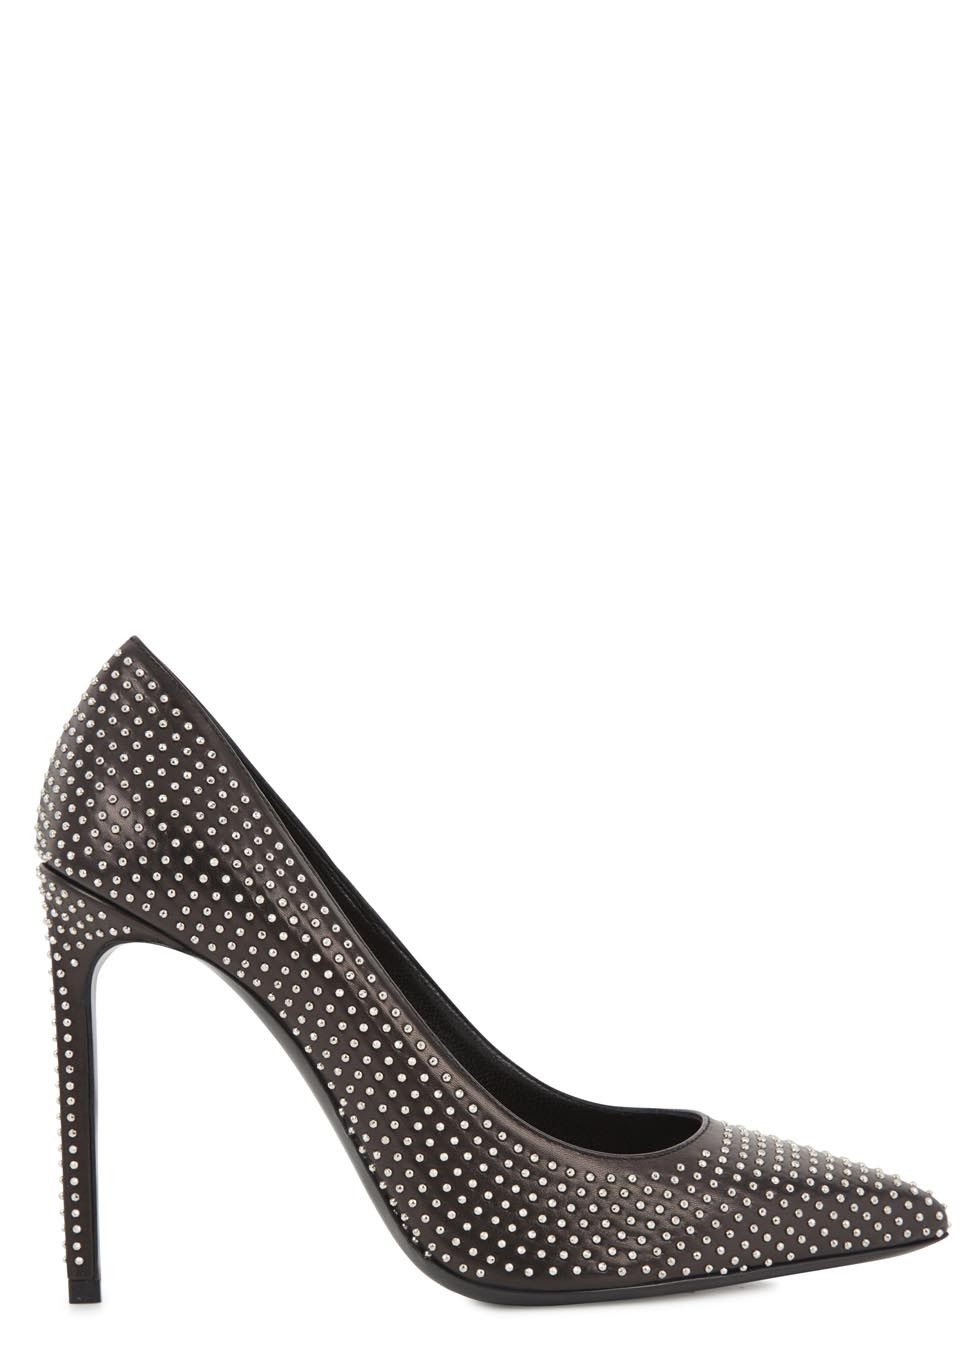 Black studded leather pumps  - Women